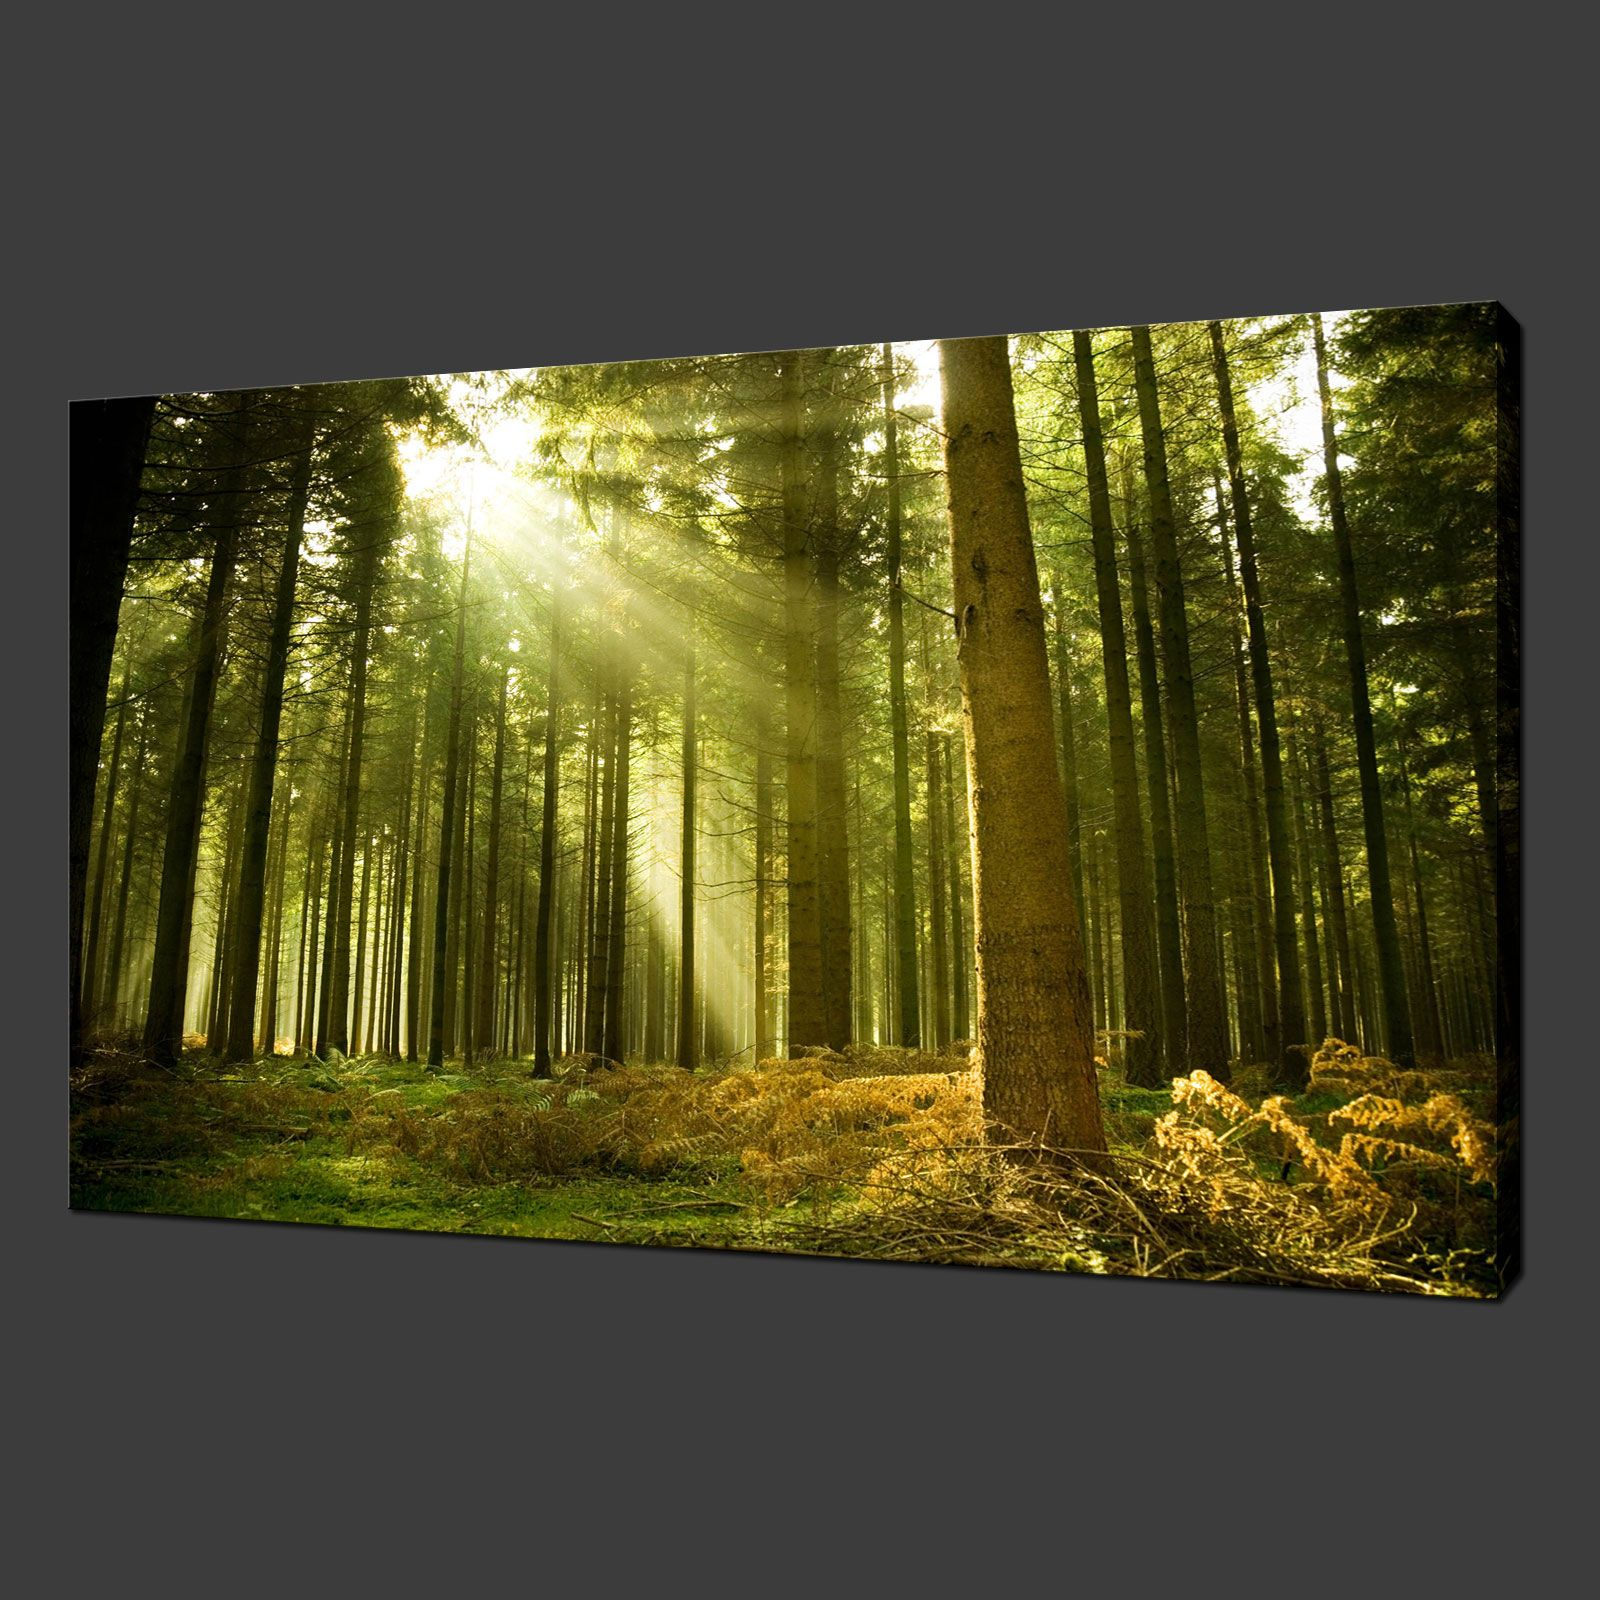 GREEN FOREST RAYS PREMIUM CANVAS PRINT WALL ART MODERN DESIGN FREE ...